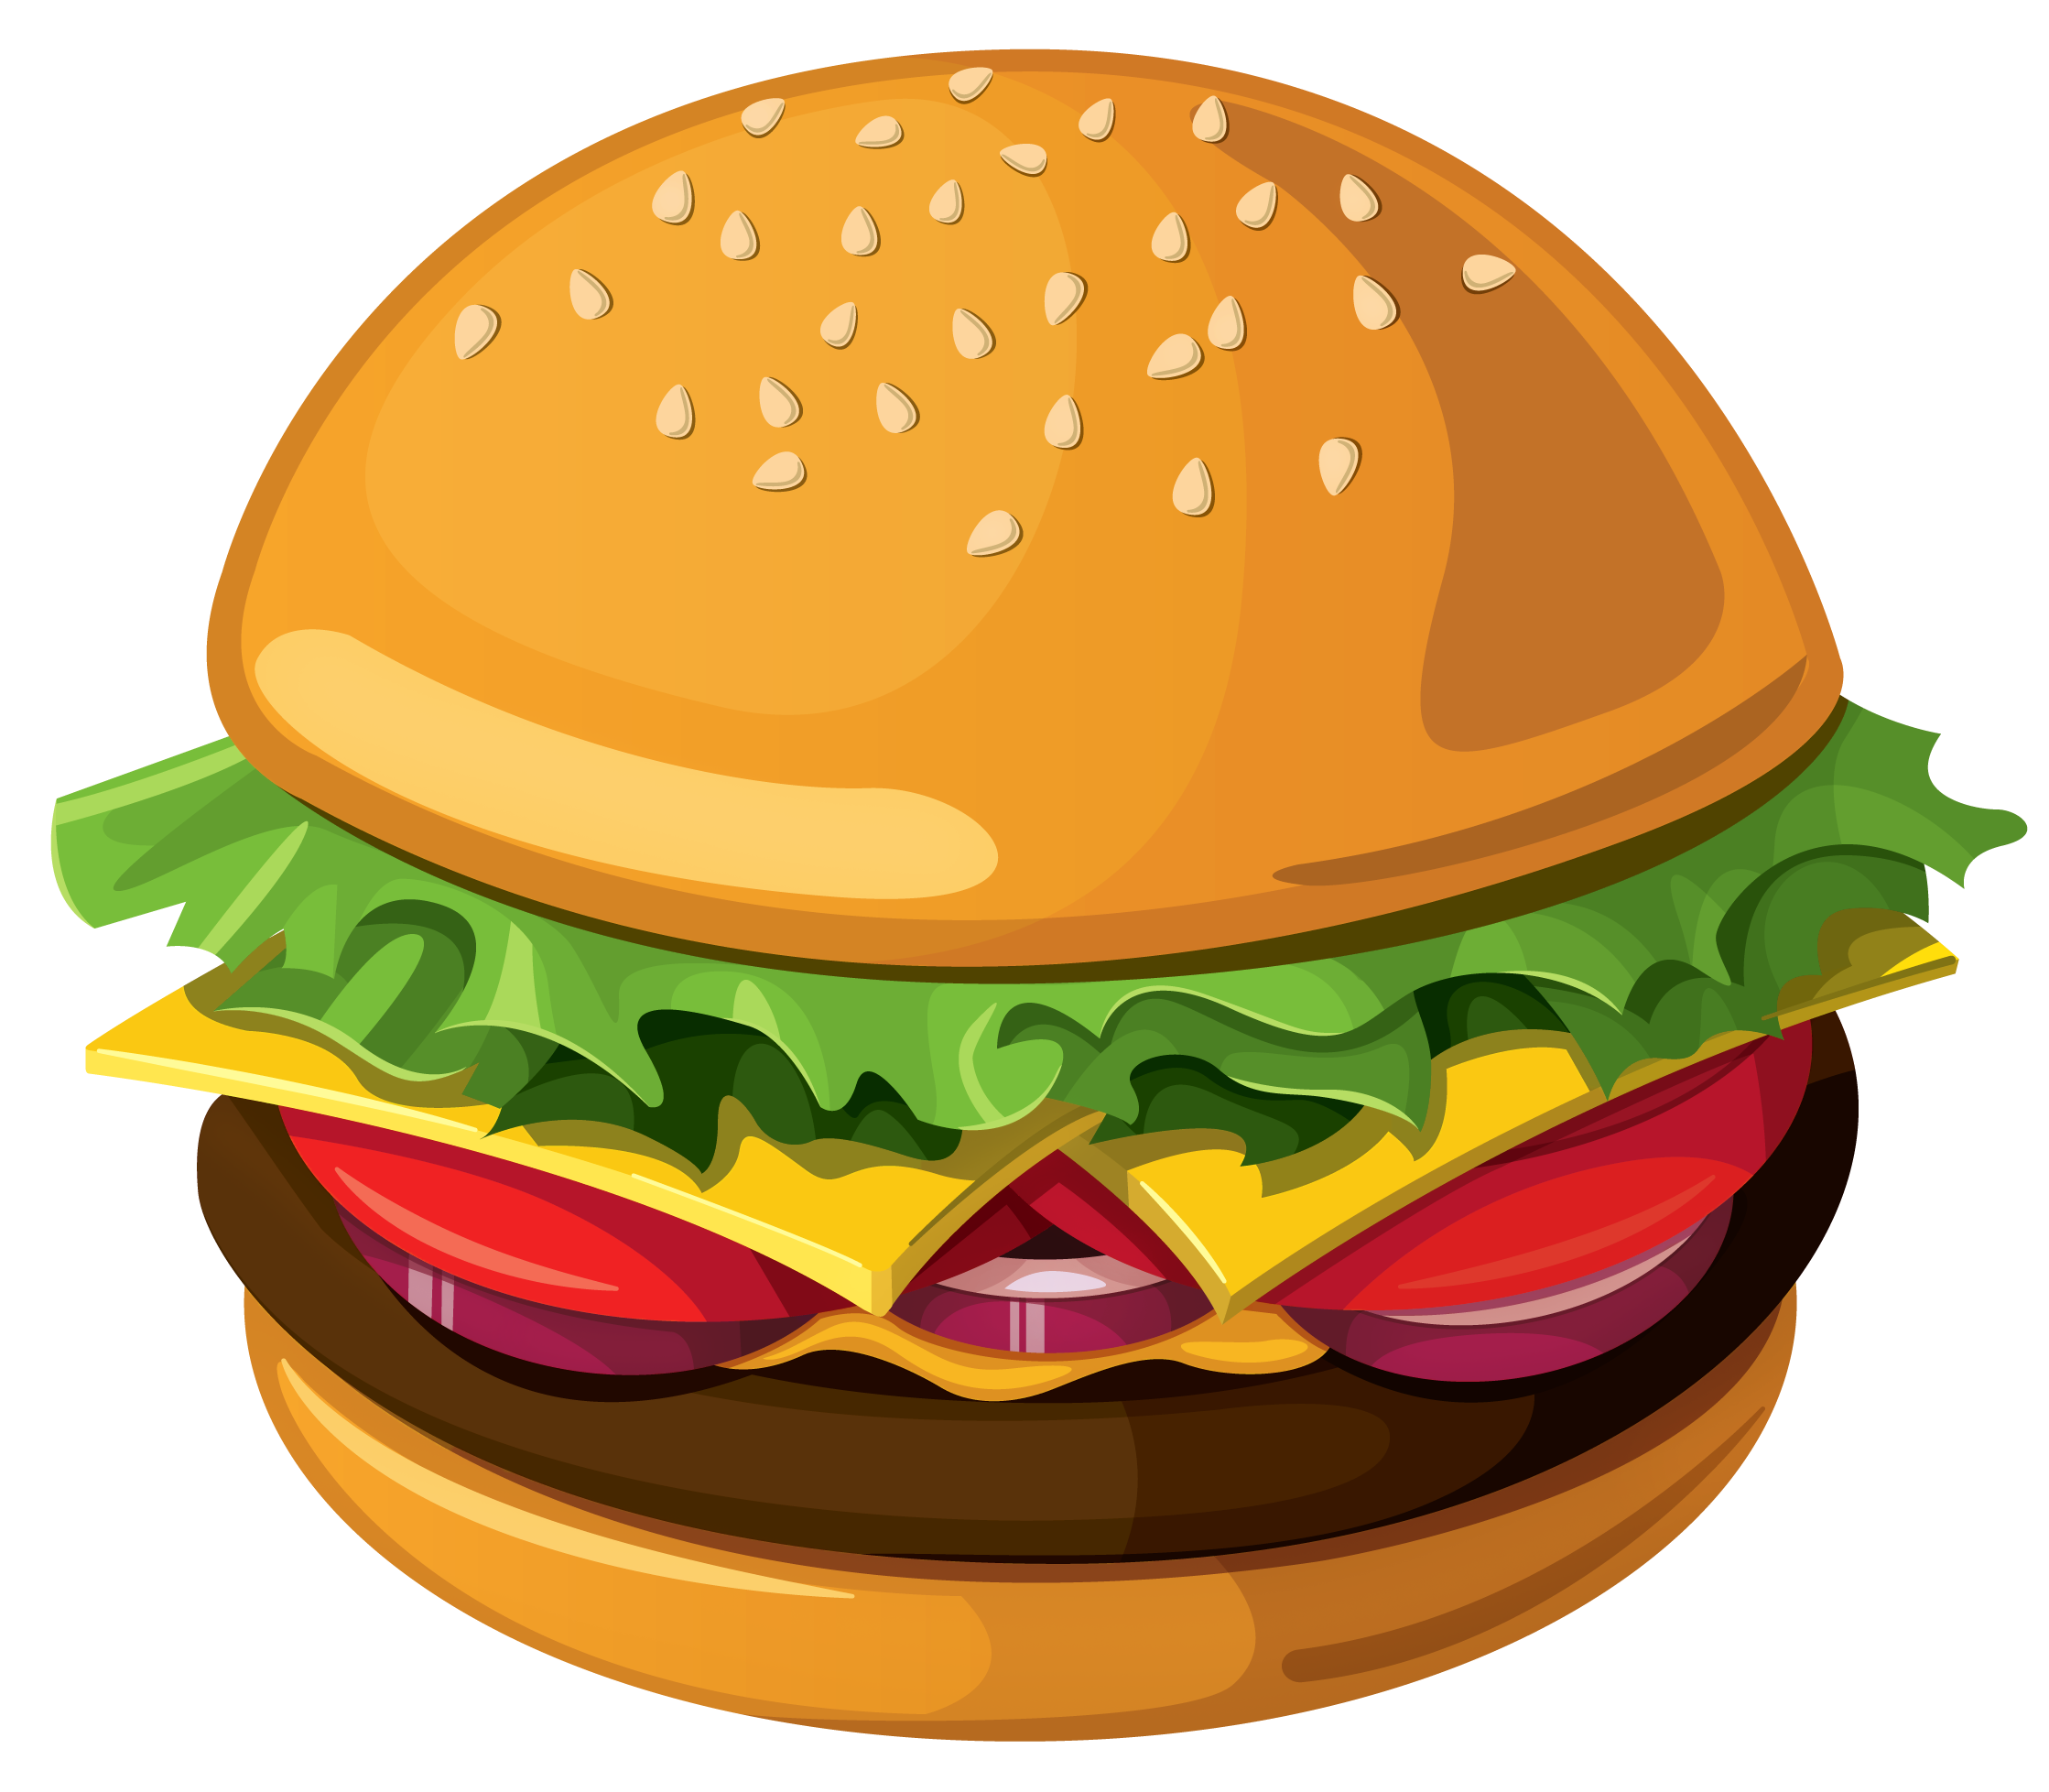 Hamburger clipart pictures freeuse library 13+ Hamburger Clipart | ClipartLook freeuse library